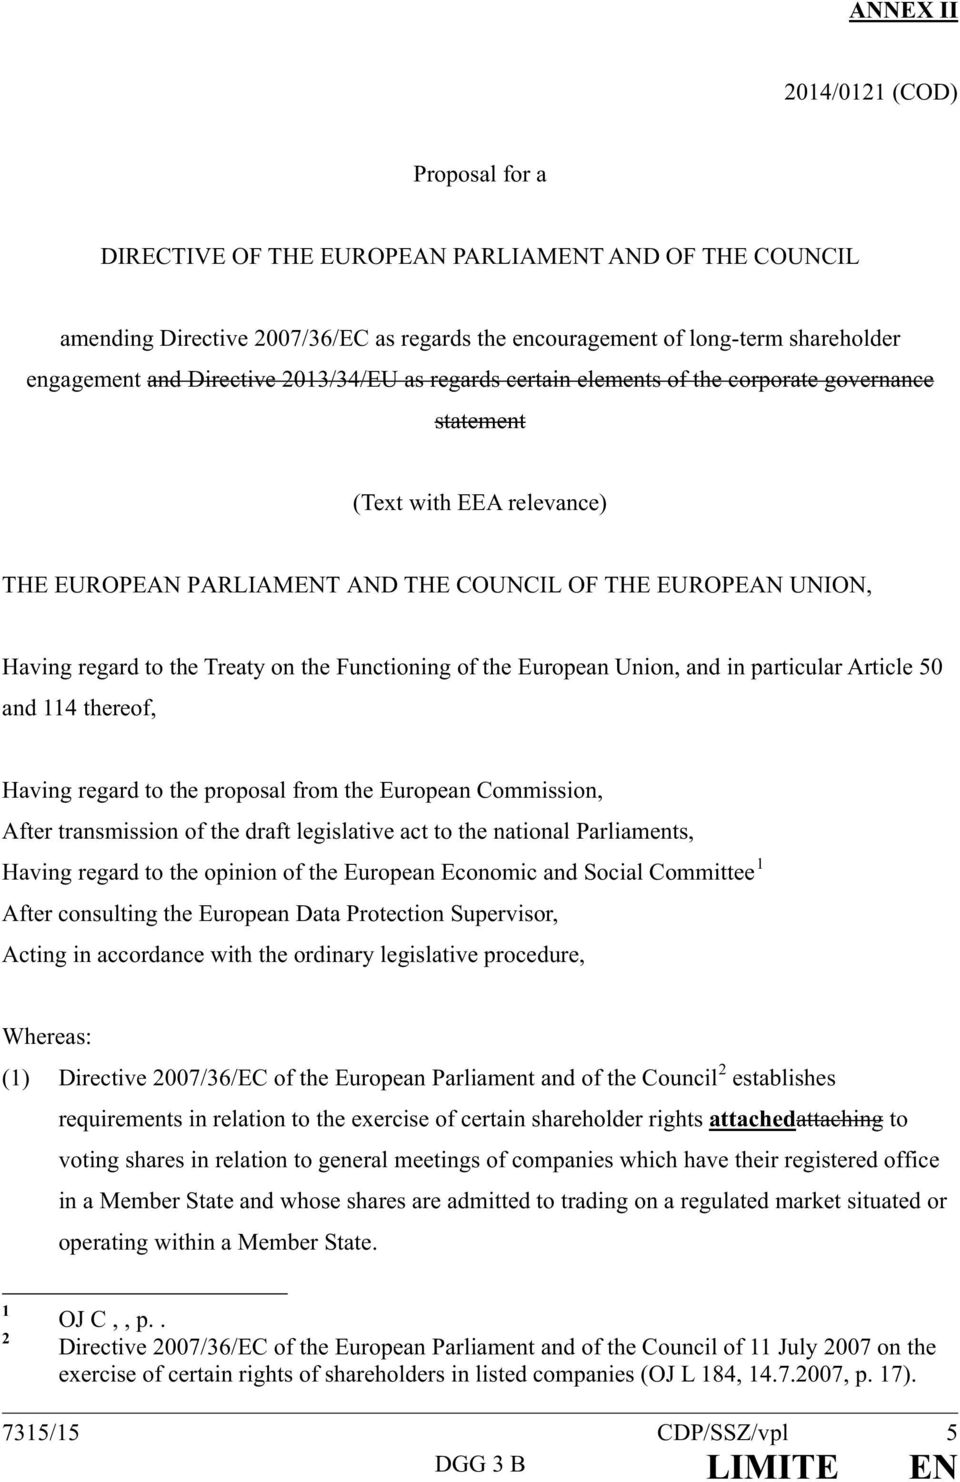 Treaty on the Functioning of the European Union, and in particular Article 50 and 114 thereof, Having regard to the proposal from the European Commission, After transmission of the draft legislative